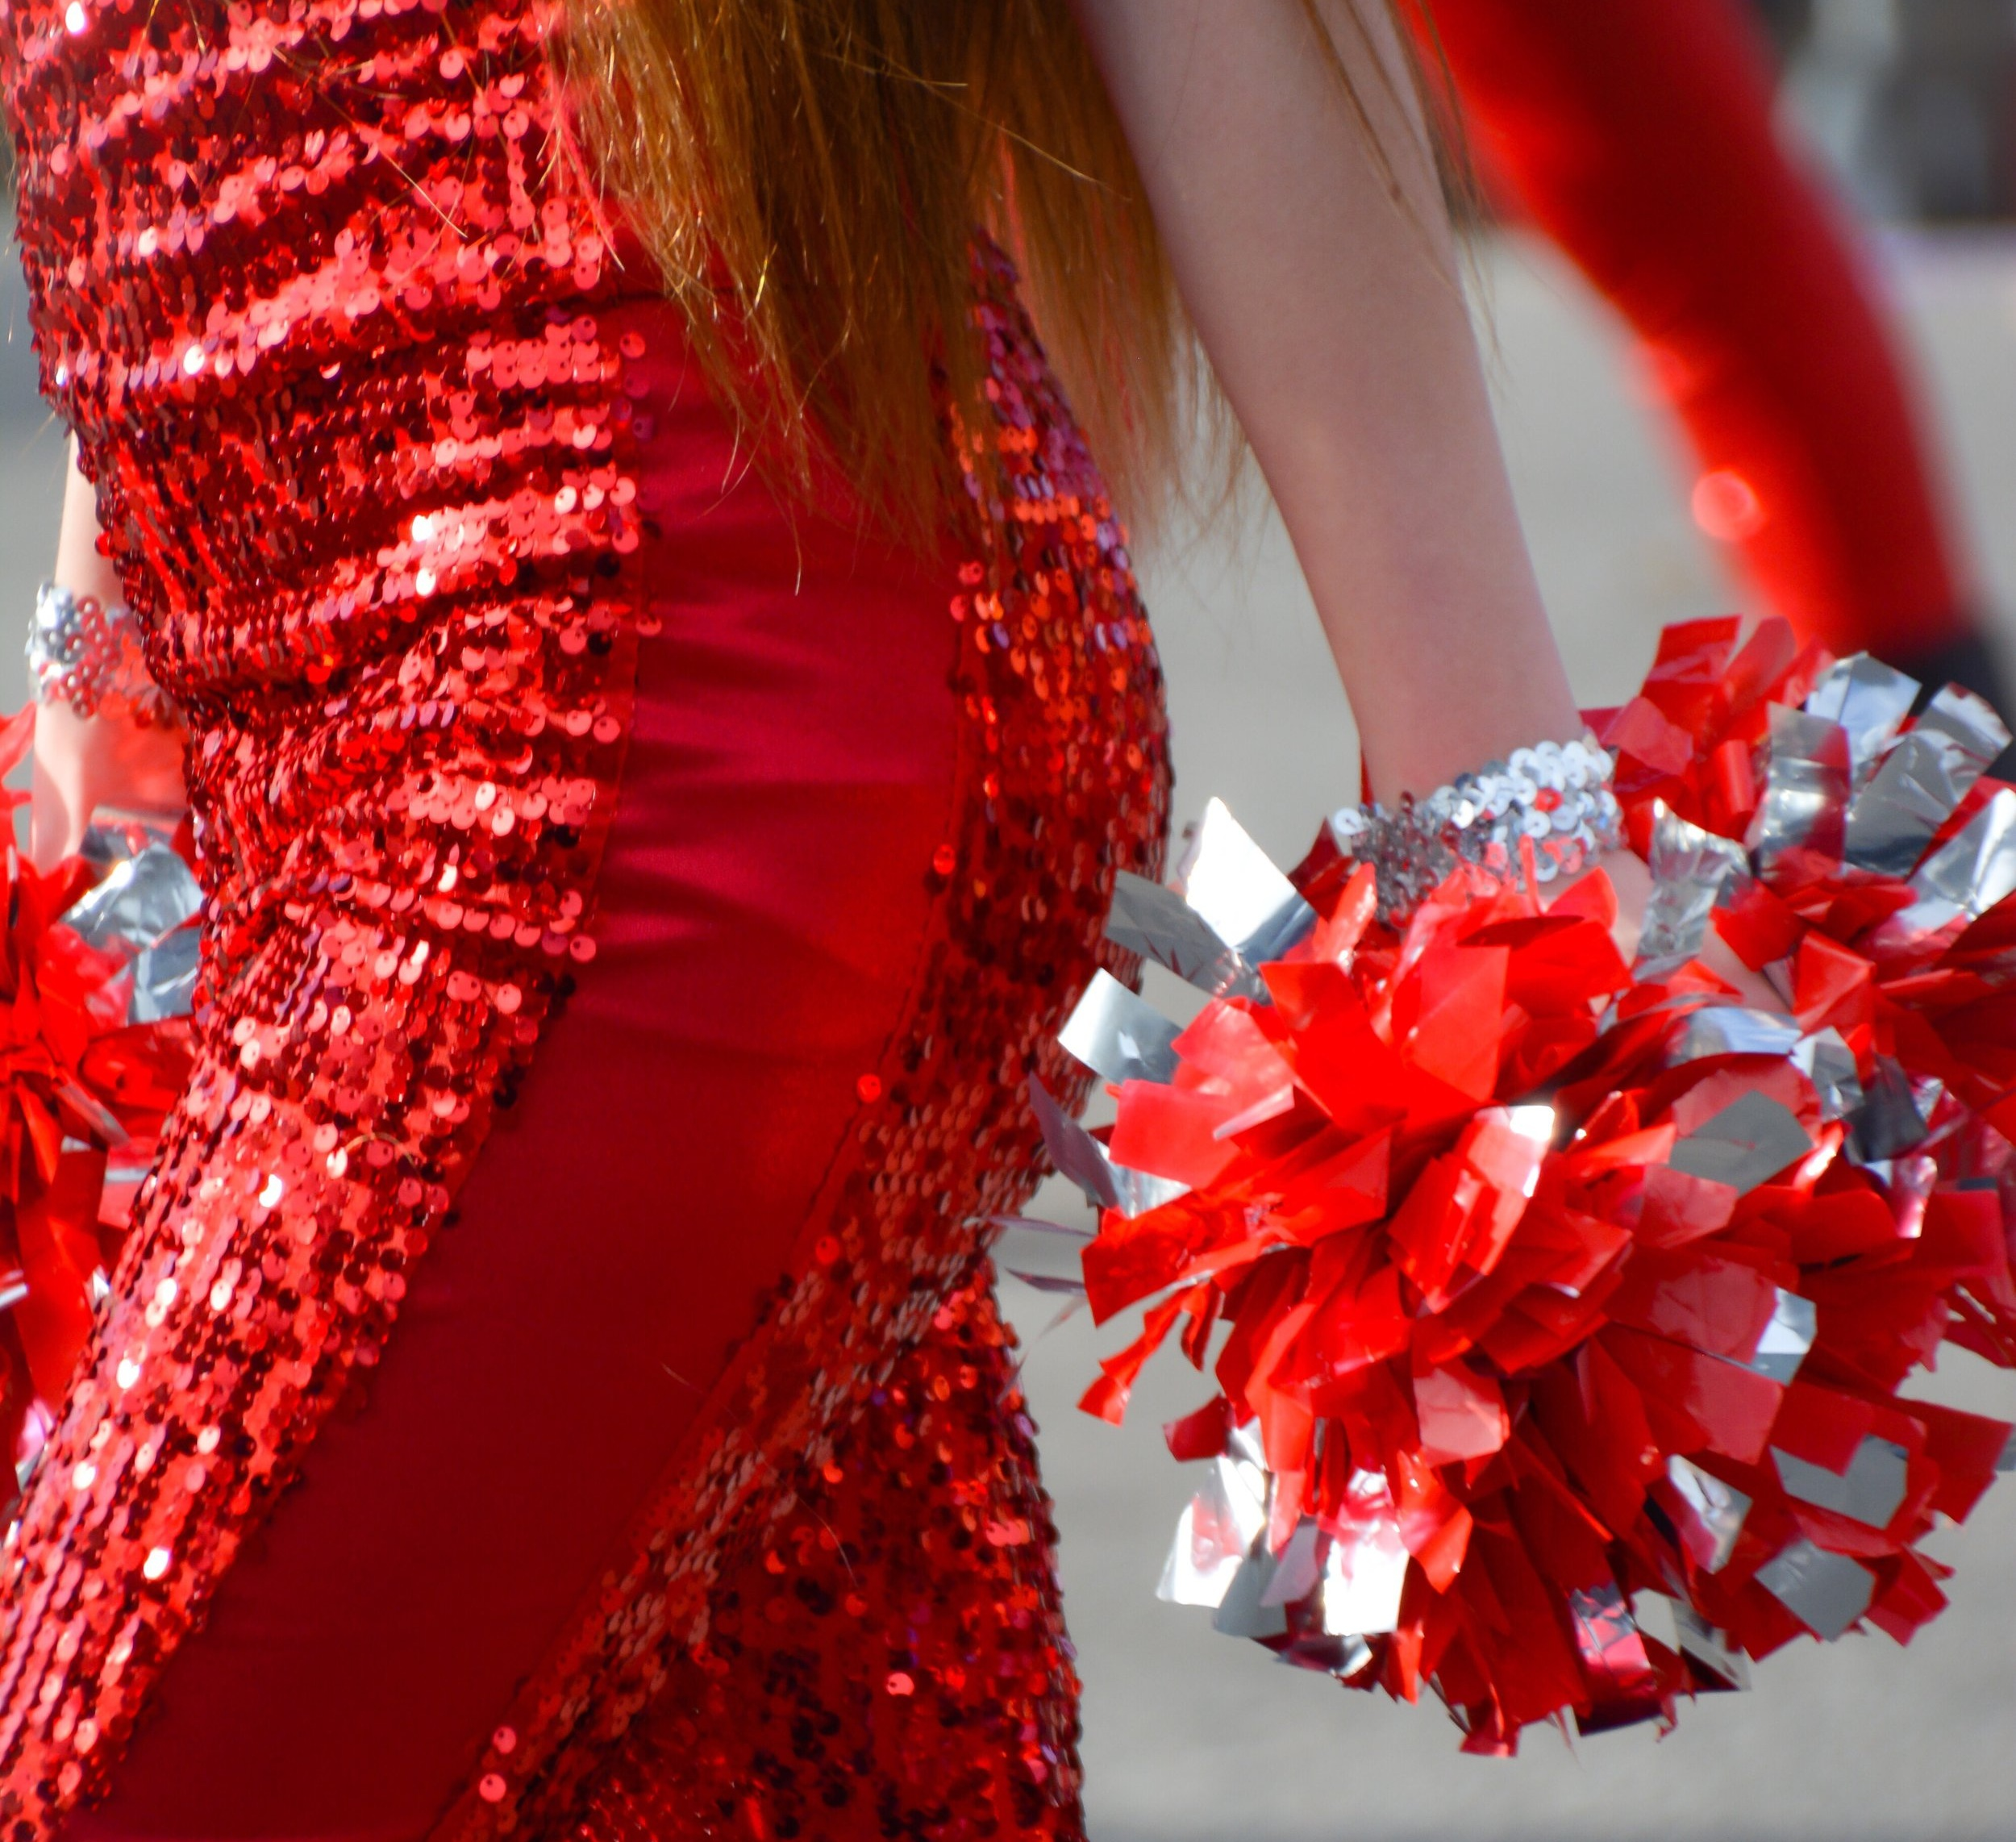 Performance Pom Prep Class - June 10th - June 28thThursdays 7:30 to 8:15pmJuly 8th - July 26Thursdays 7:30 to 8:15pmA great way to prepare dancers for the Performance Pom opportunity this fall! Dancers will work on pom motions, toe touches, and other dance team techniques! Team Spirit will not be in short supply as our future spirit leaders learn Pom technique.Price $41